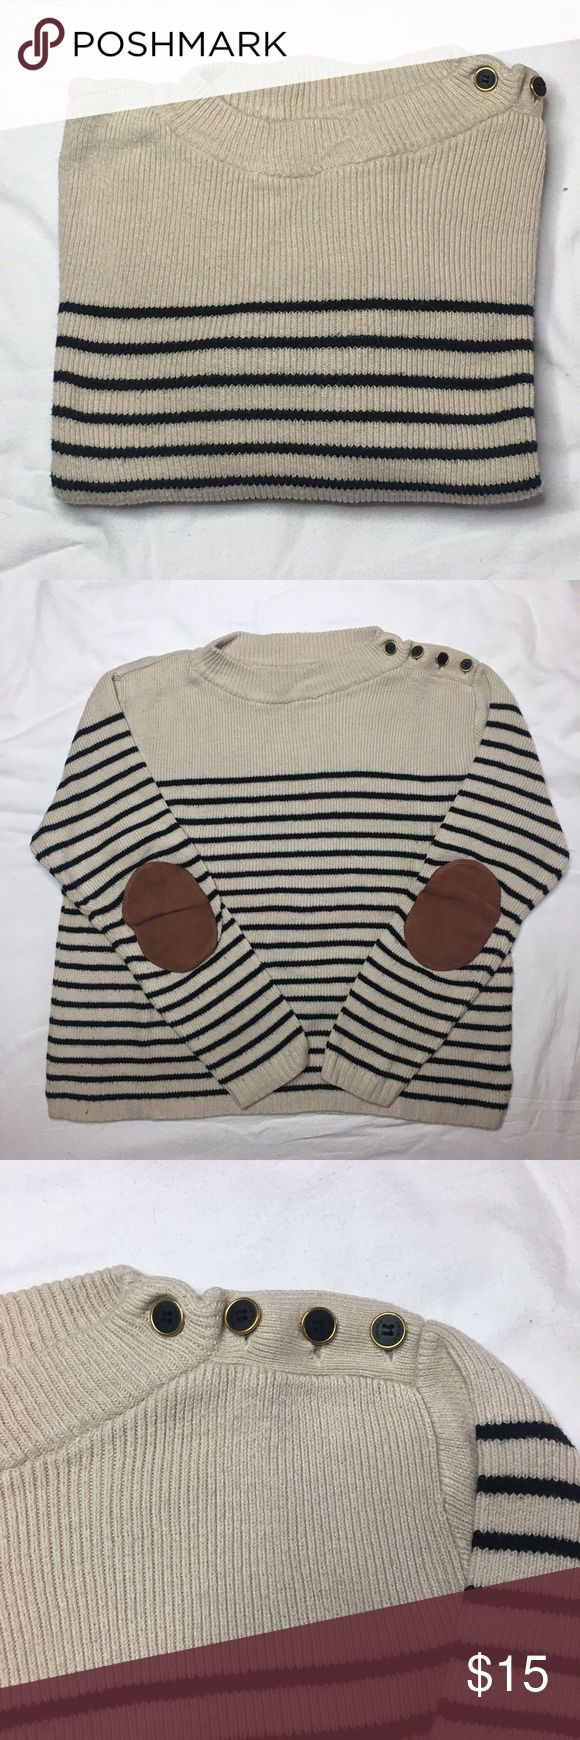 Stripped Sweater With Elbow Patches Tan sweater with black stripes and buttons, featuring brown faux suede elbow patches.                                   Size Medium                                                                              Made of Cotton/Rayon/Nylon (can't read the small numbers on the tag) Forever 21 Sweaters Crew & Scoop Necks